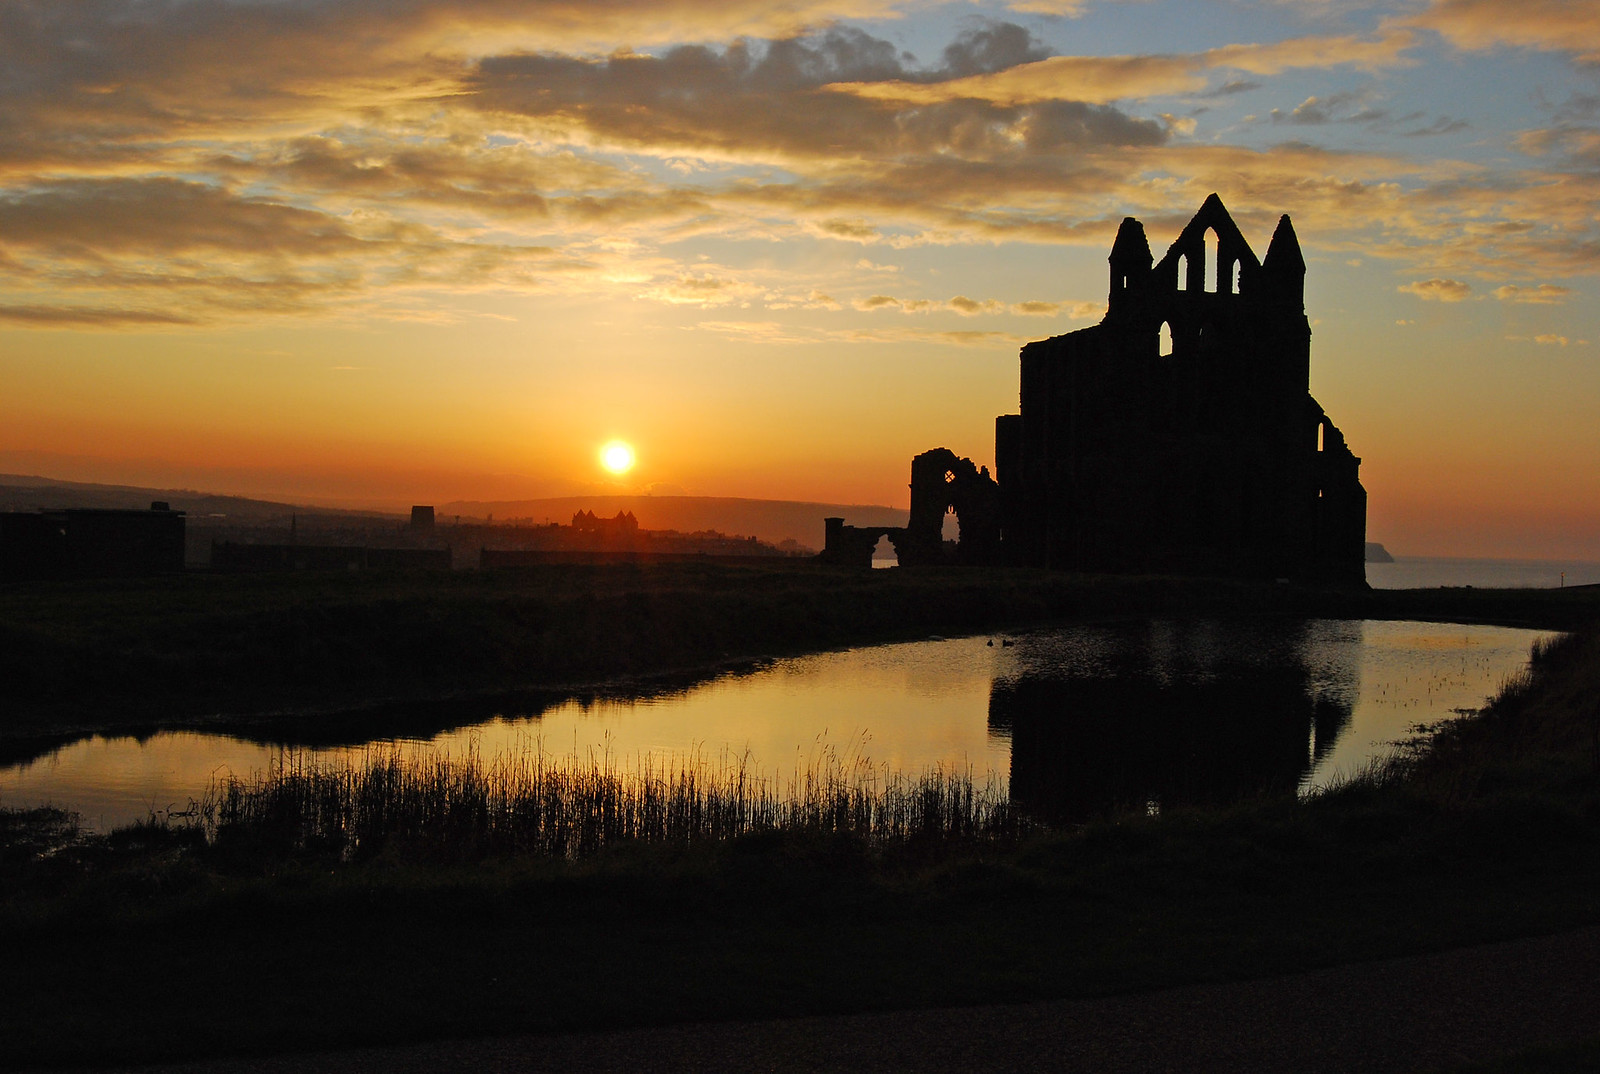 Whitby Abbey at sunset with reflections. Credit Ackers72